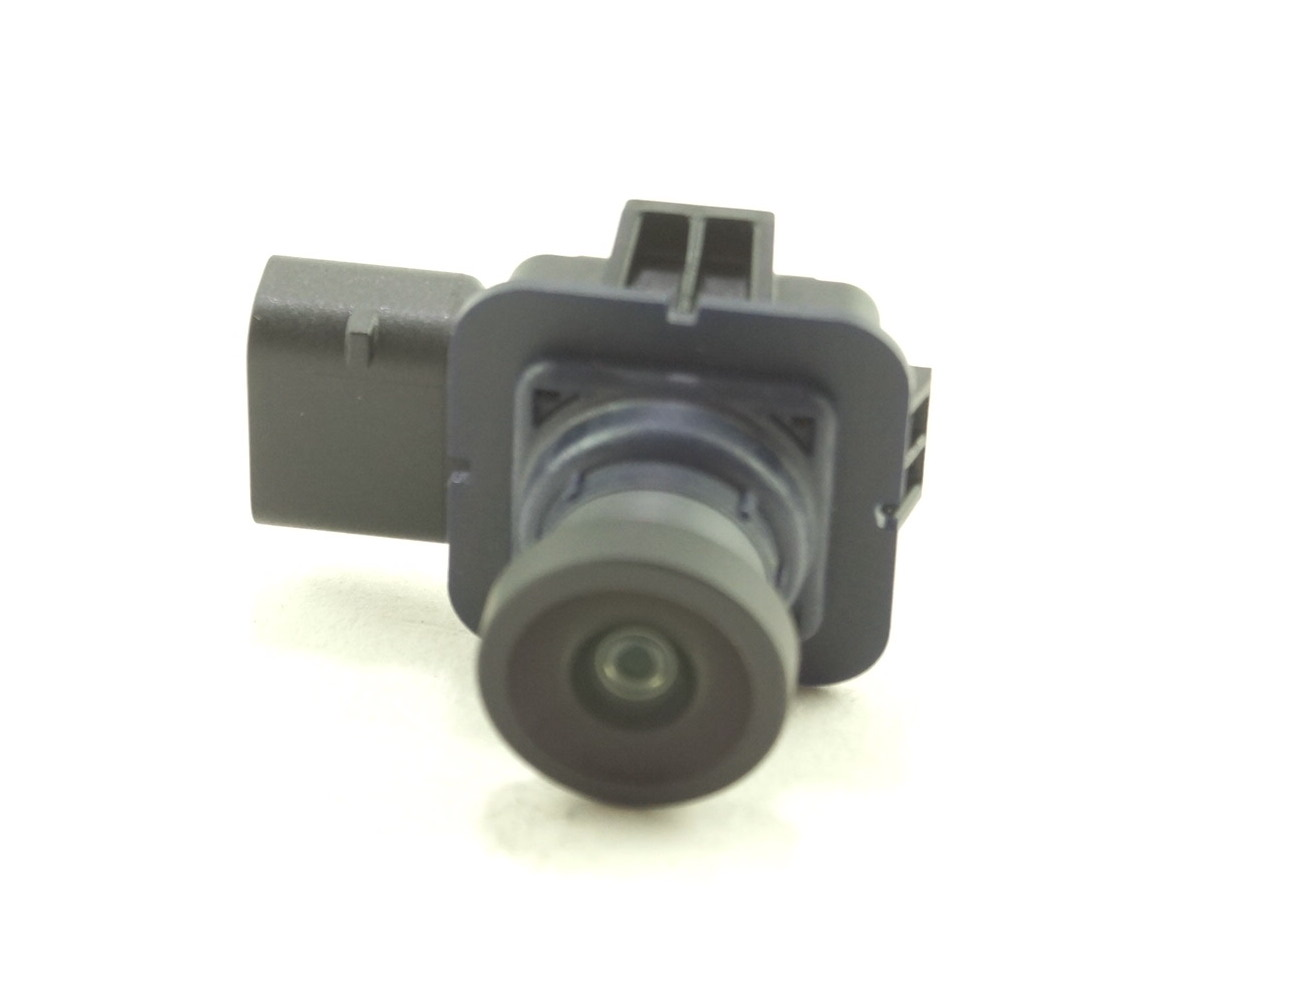 Genuine OEM JK4Z19G490A Ford 15-18 Transit 150 Rear Camera Right New - image 2